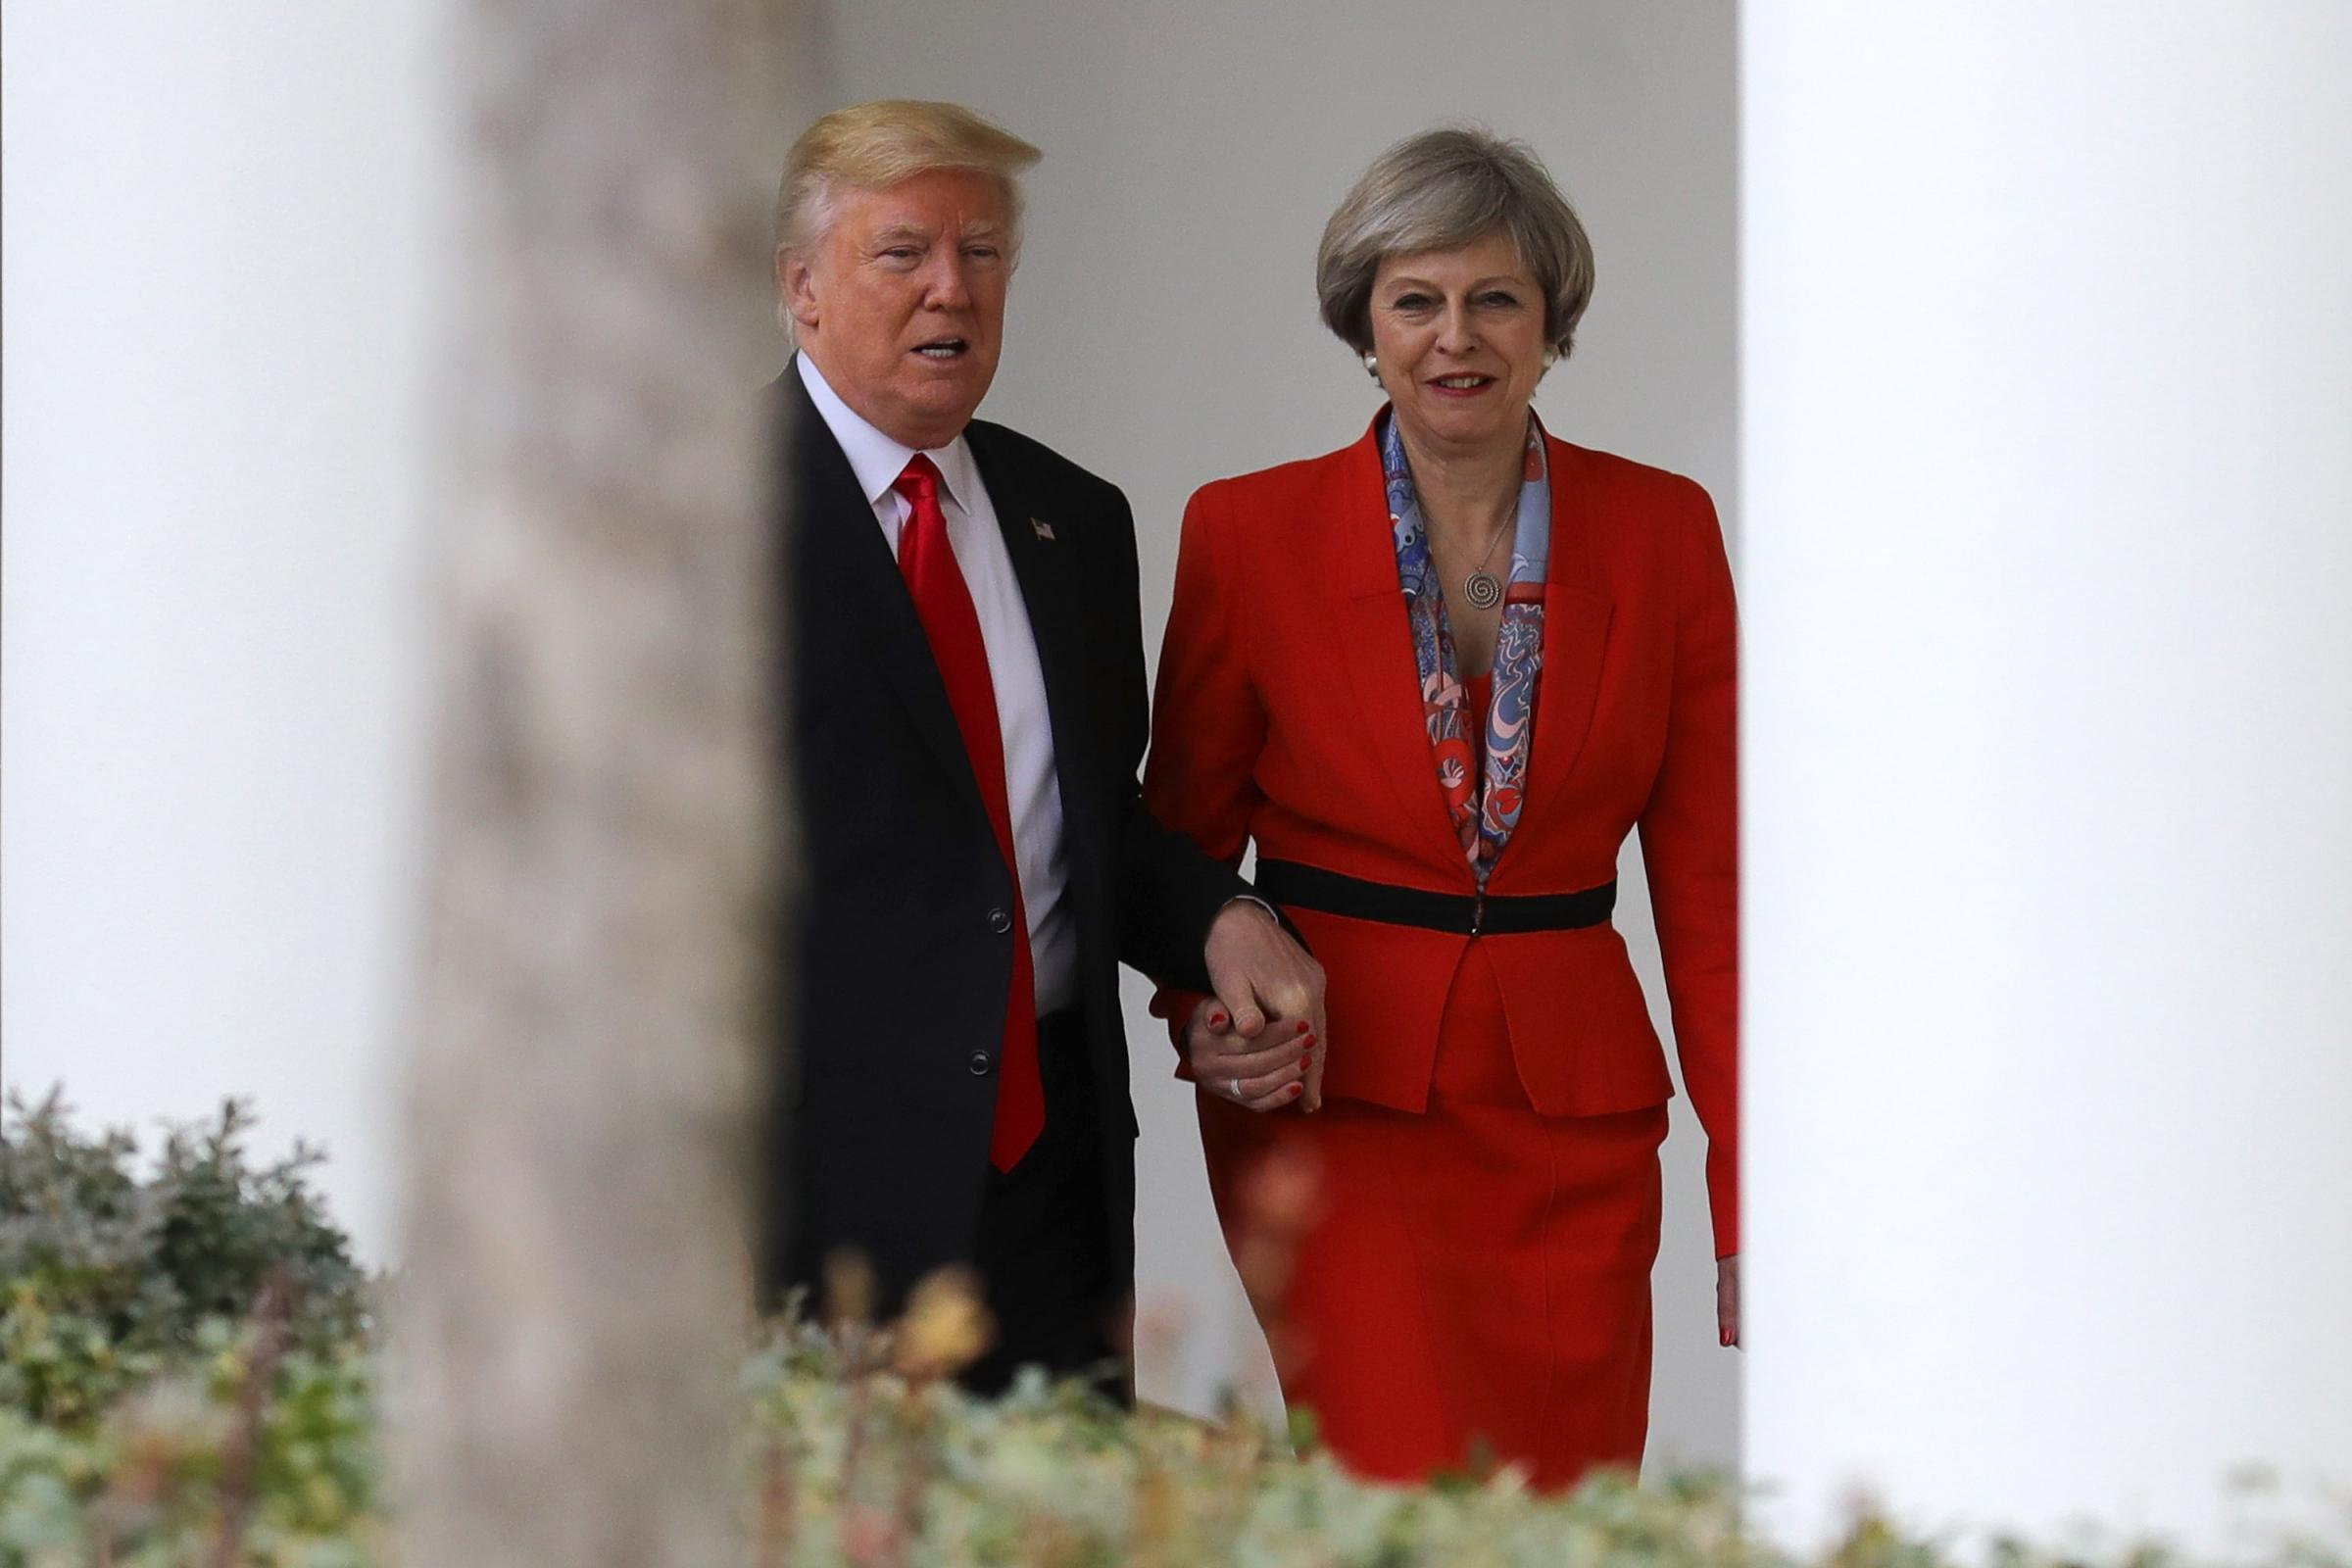 Hand of friendship: Trump and May